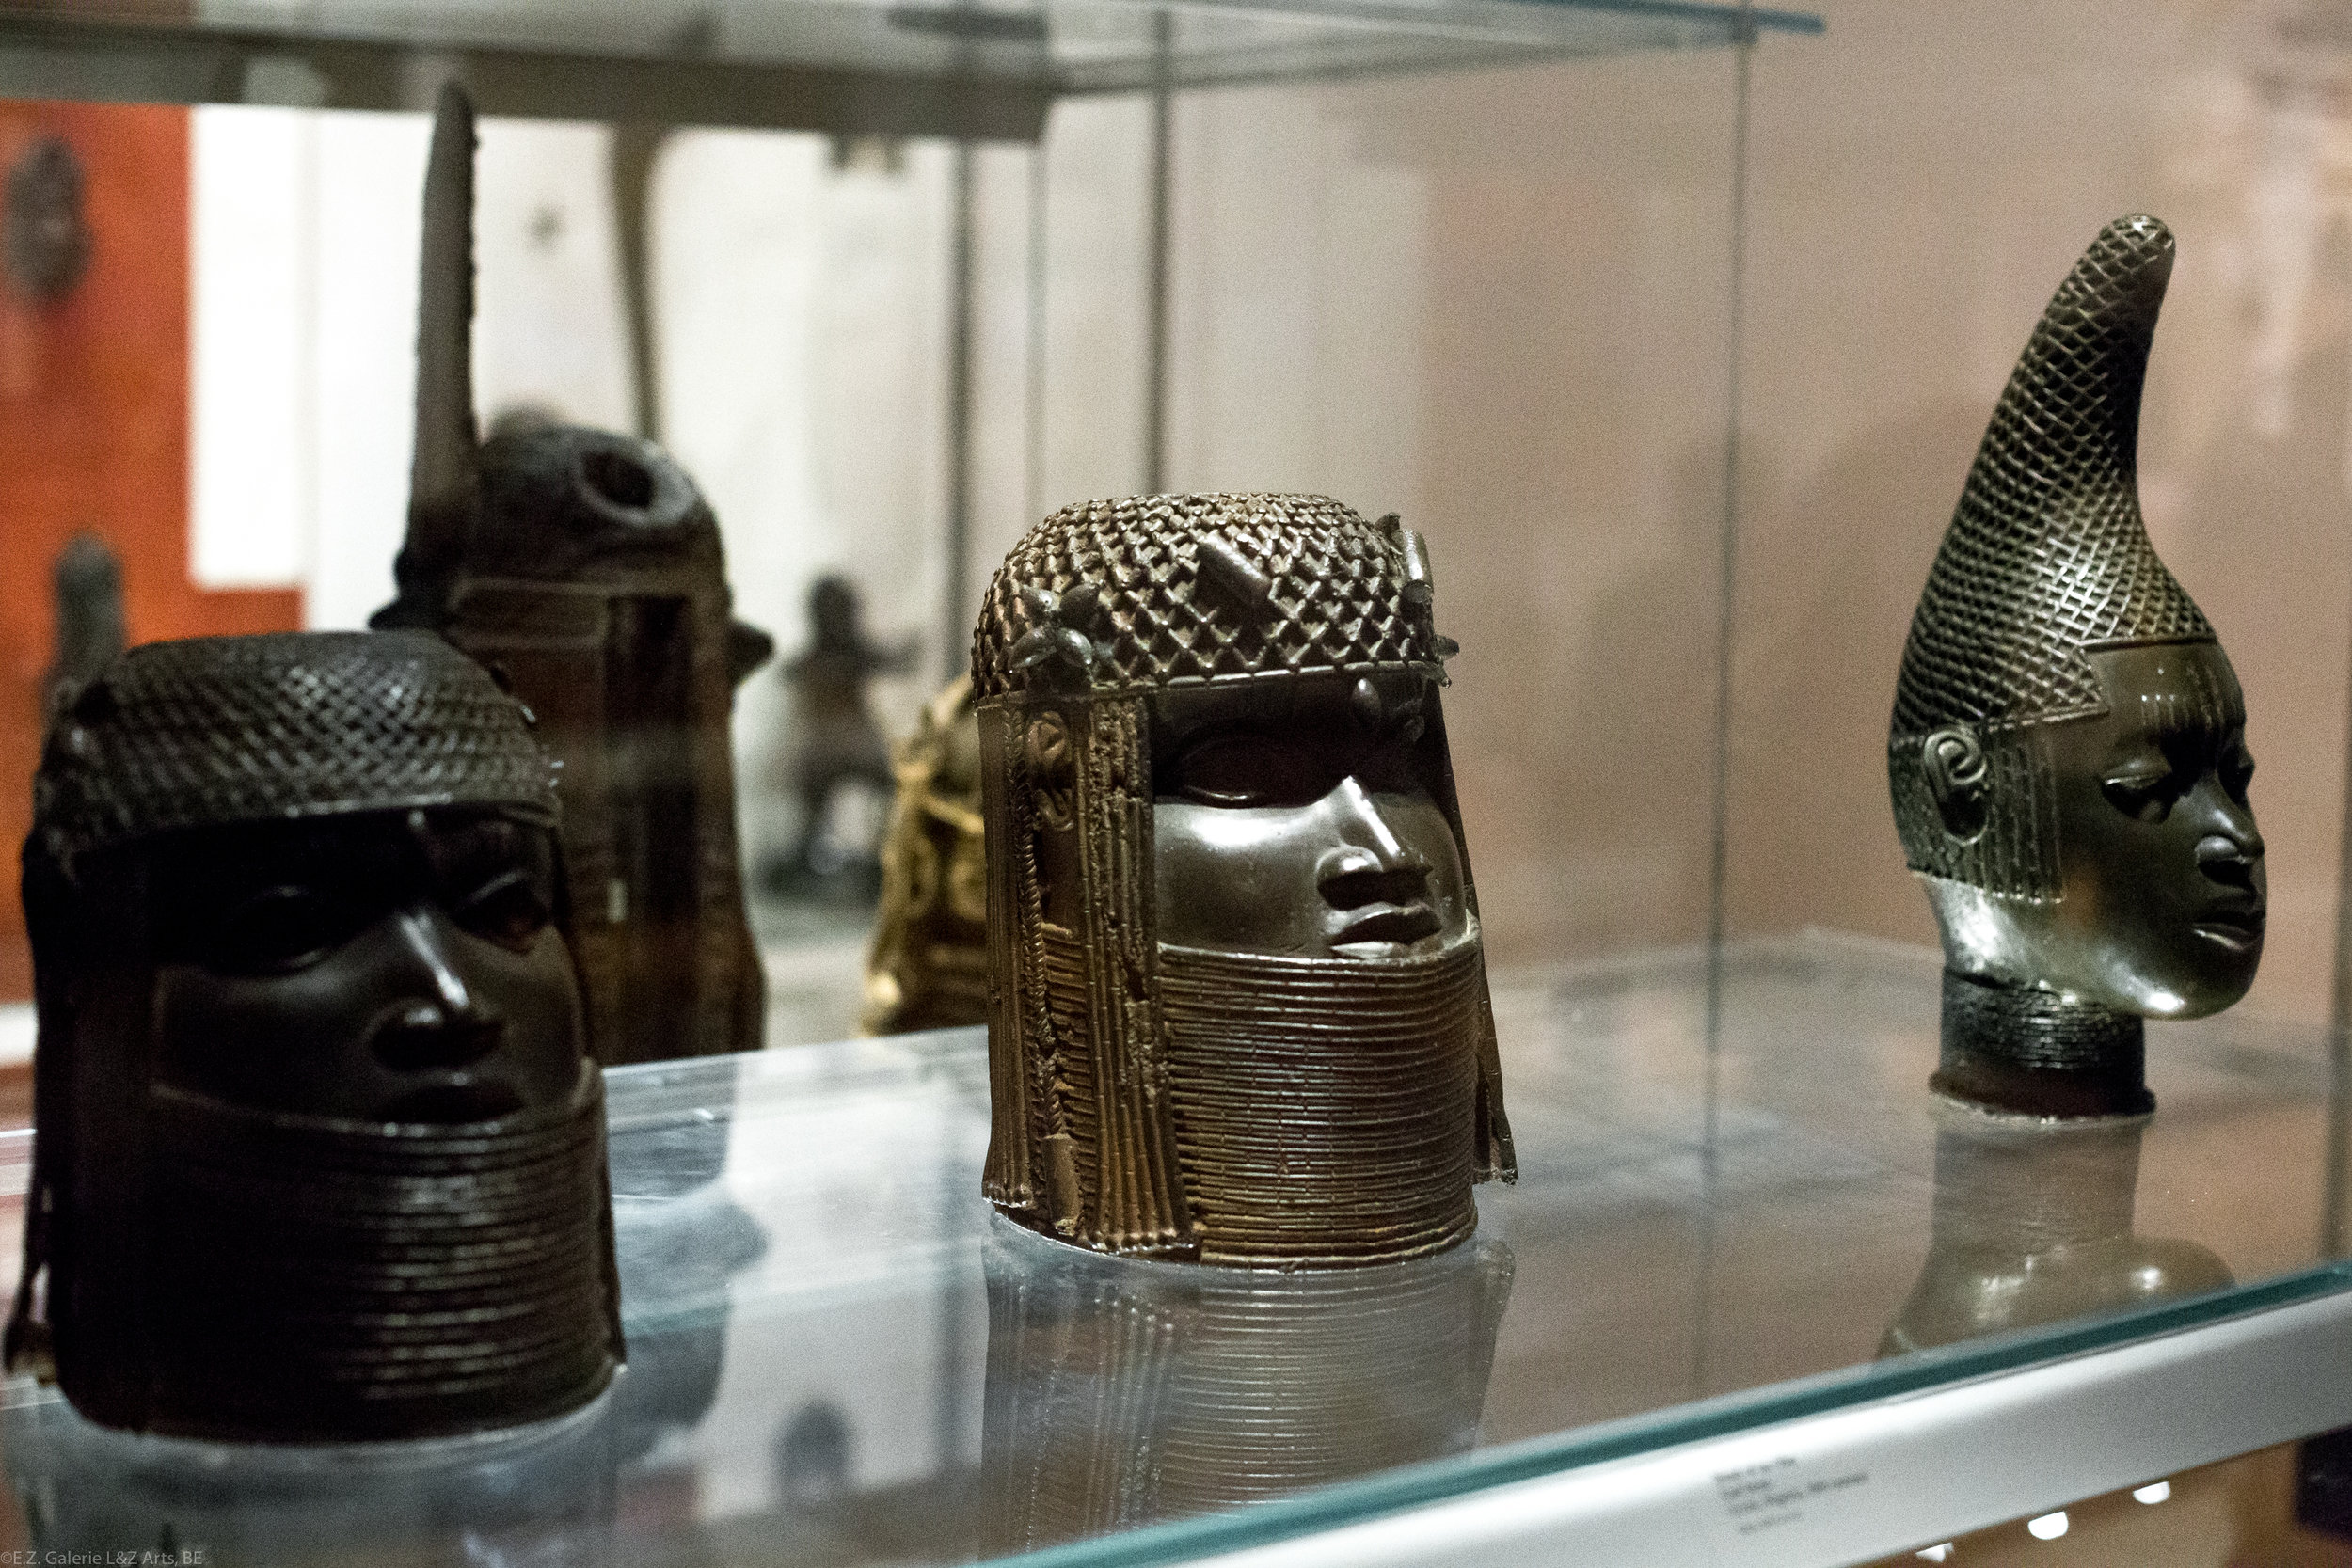 art-tribal-africain-londres-british-museum-sainsbury-galleries-bronze-benin-statue-masque-ivoire-africa-london-bini-edo-galerie-lz-arts-belgique-france-benin-1.jpg